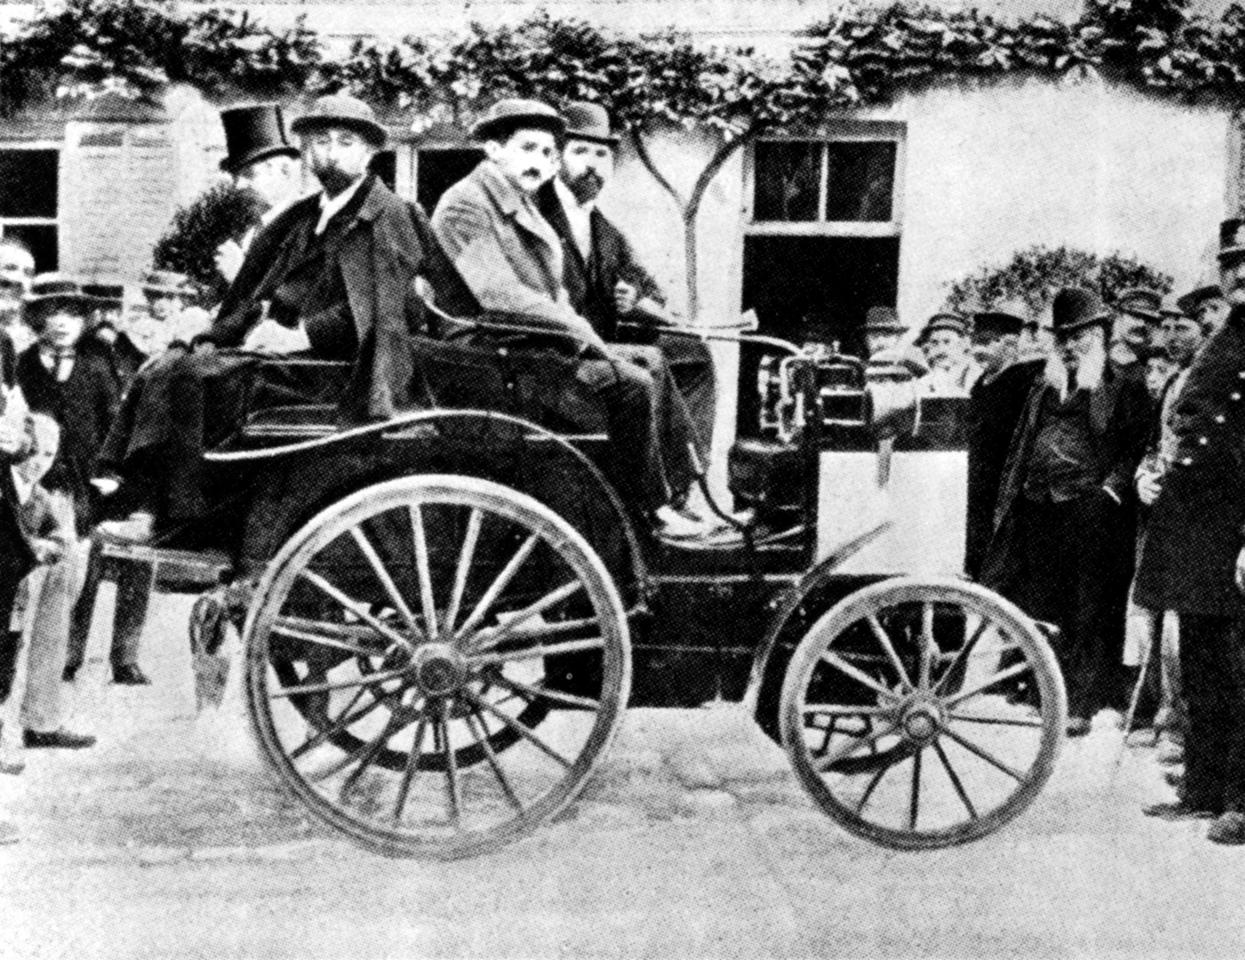 Paul Panhard in his Daimler-powered Panhard & Levassor, finished in fourth place, with Panhard & Levassor awarded joint first prize in the first competitive motorcar race from Paris to Rouen, 22 July 1894